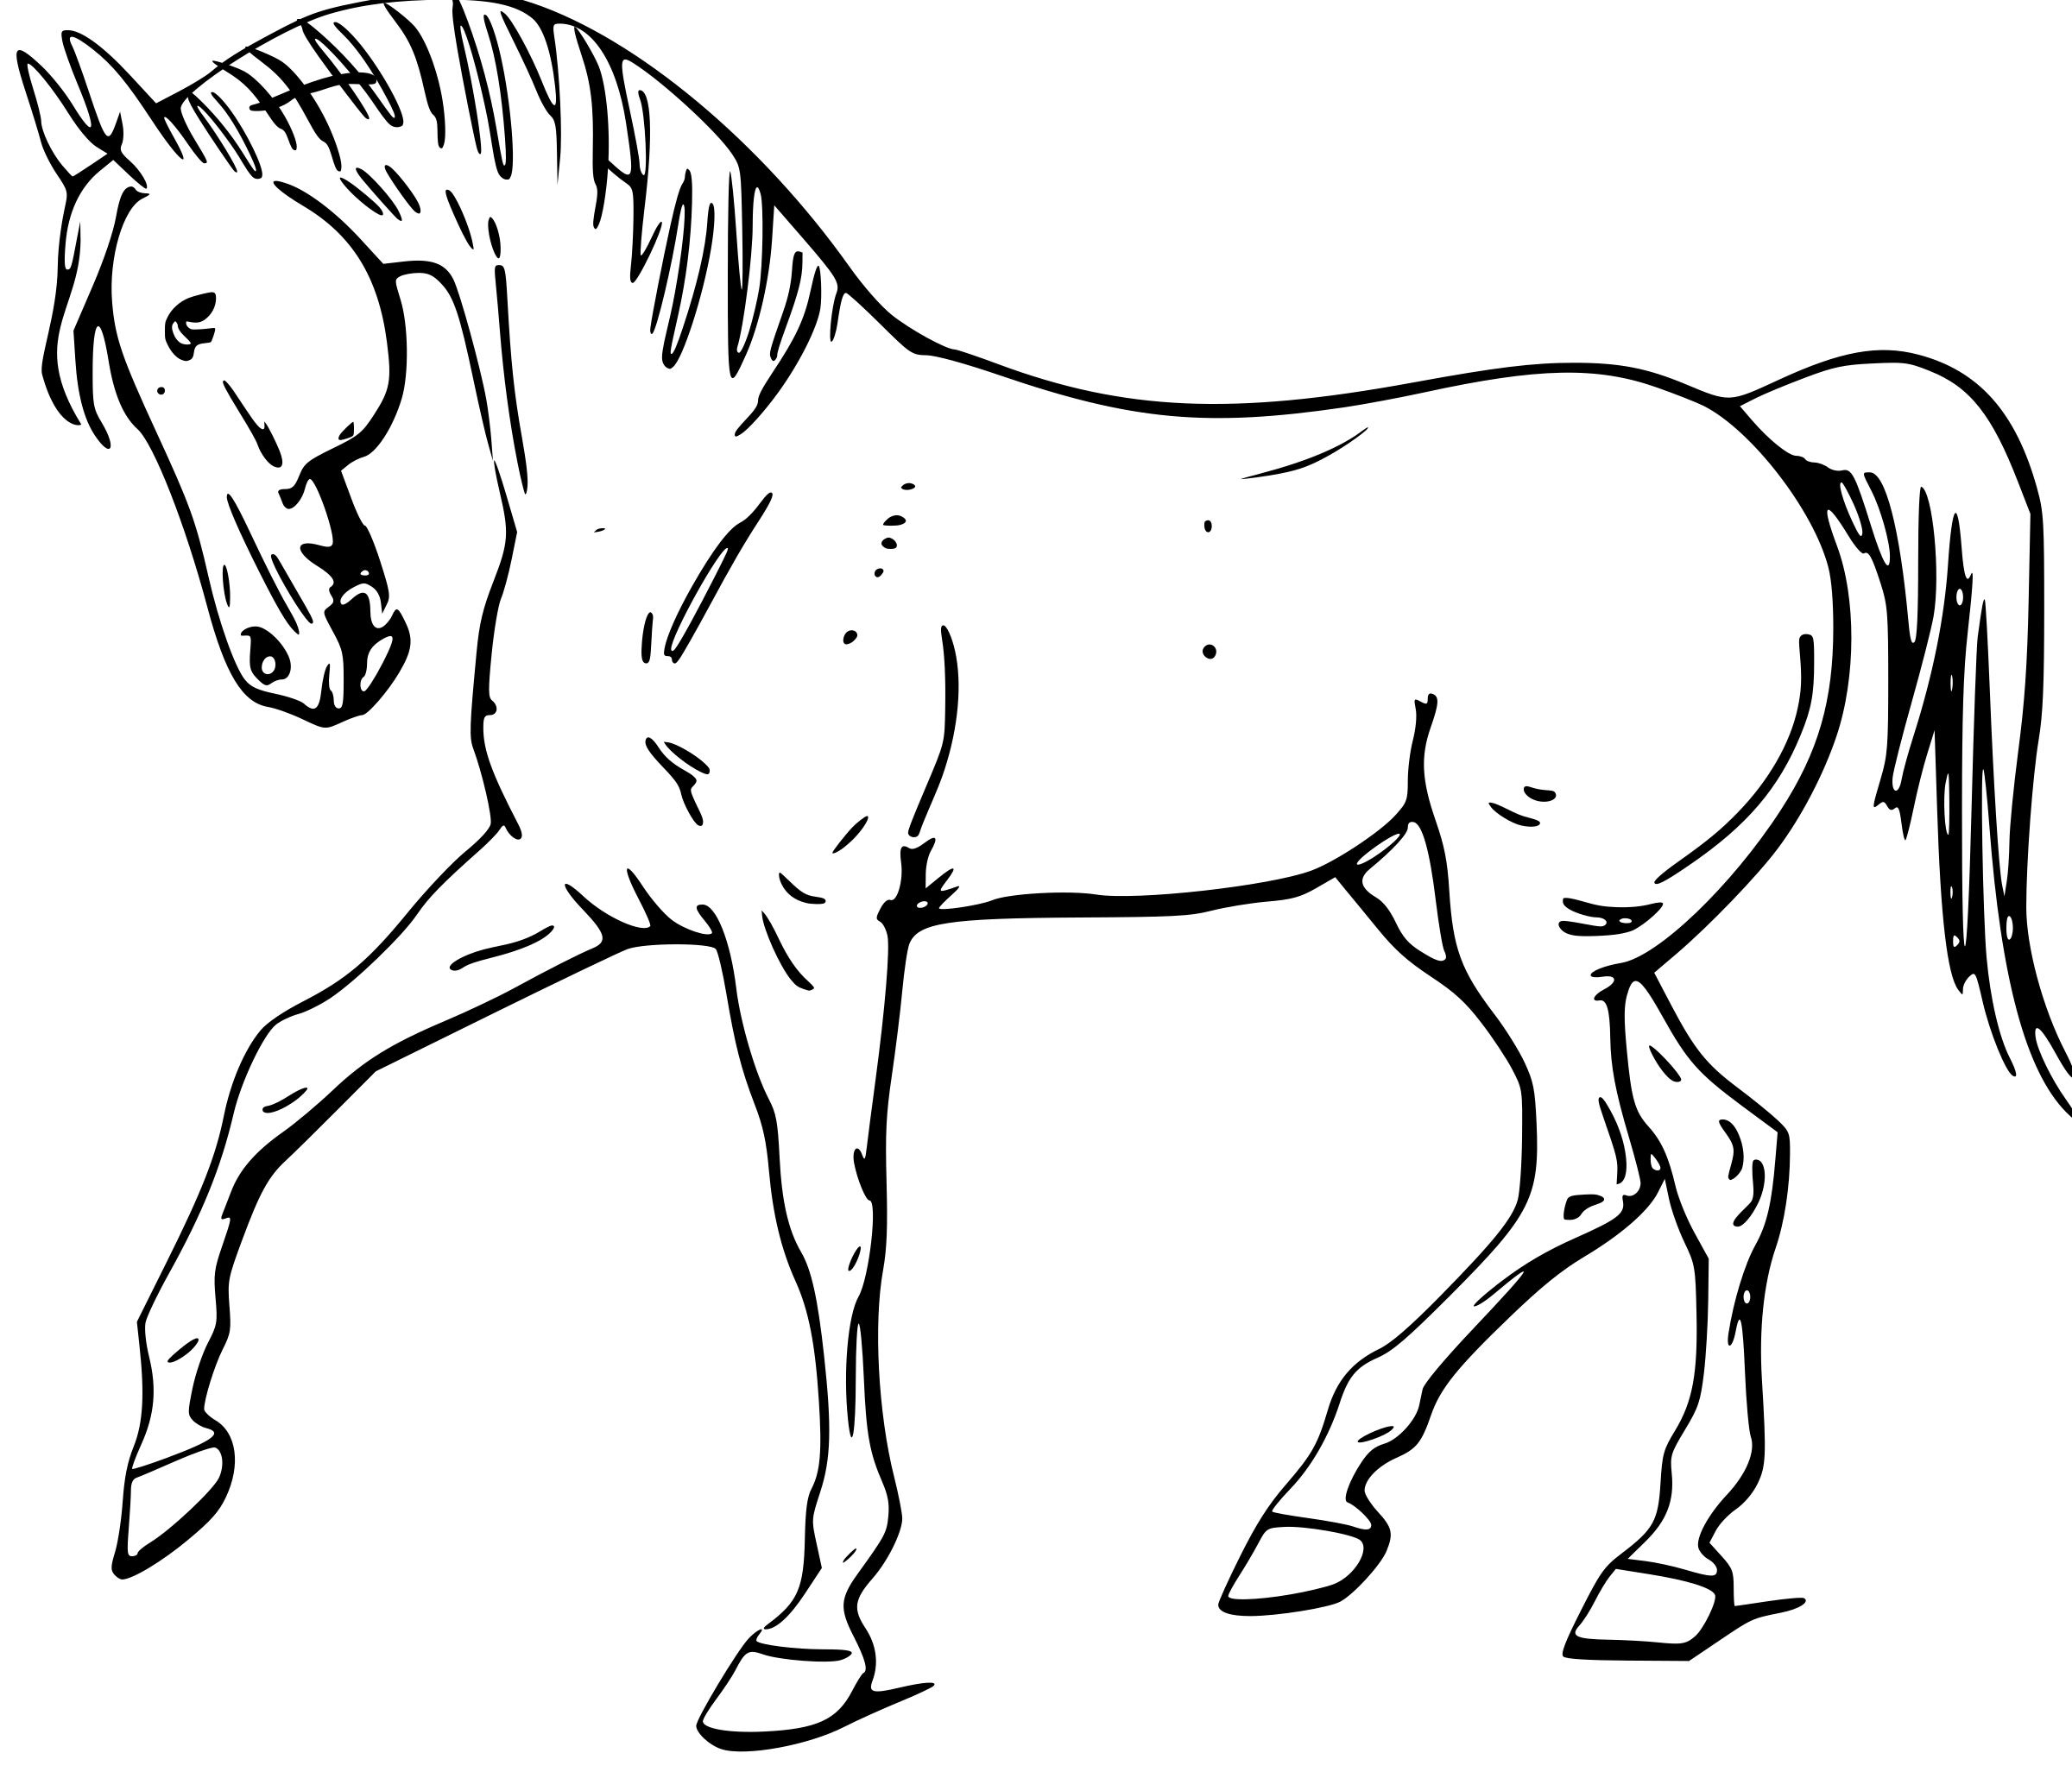 horse drawing outlines at getdrawings com free for personal use rh getdrawings com Western Horse Clip Art house outline clip art